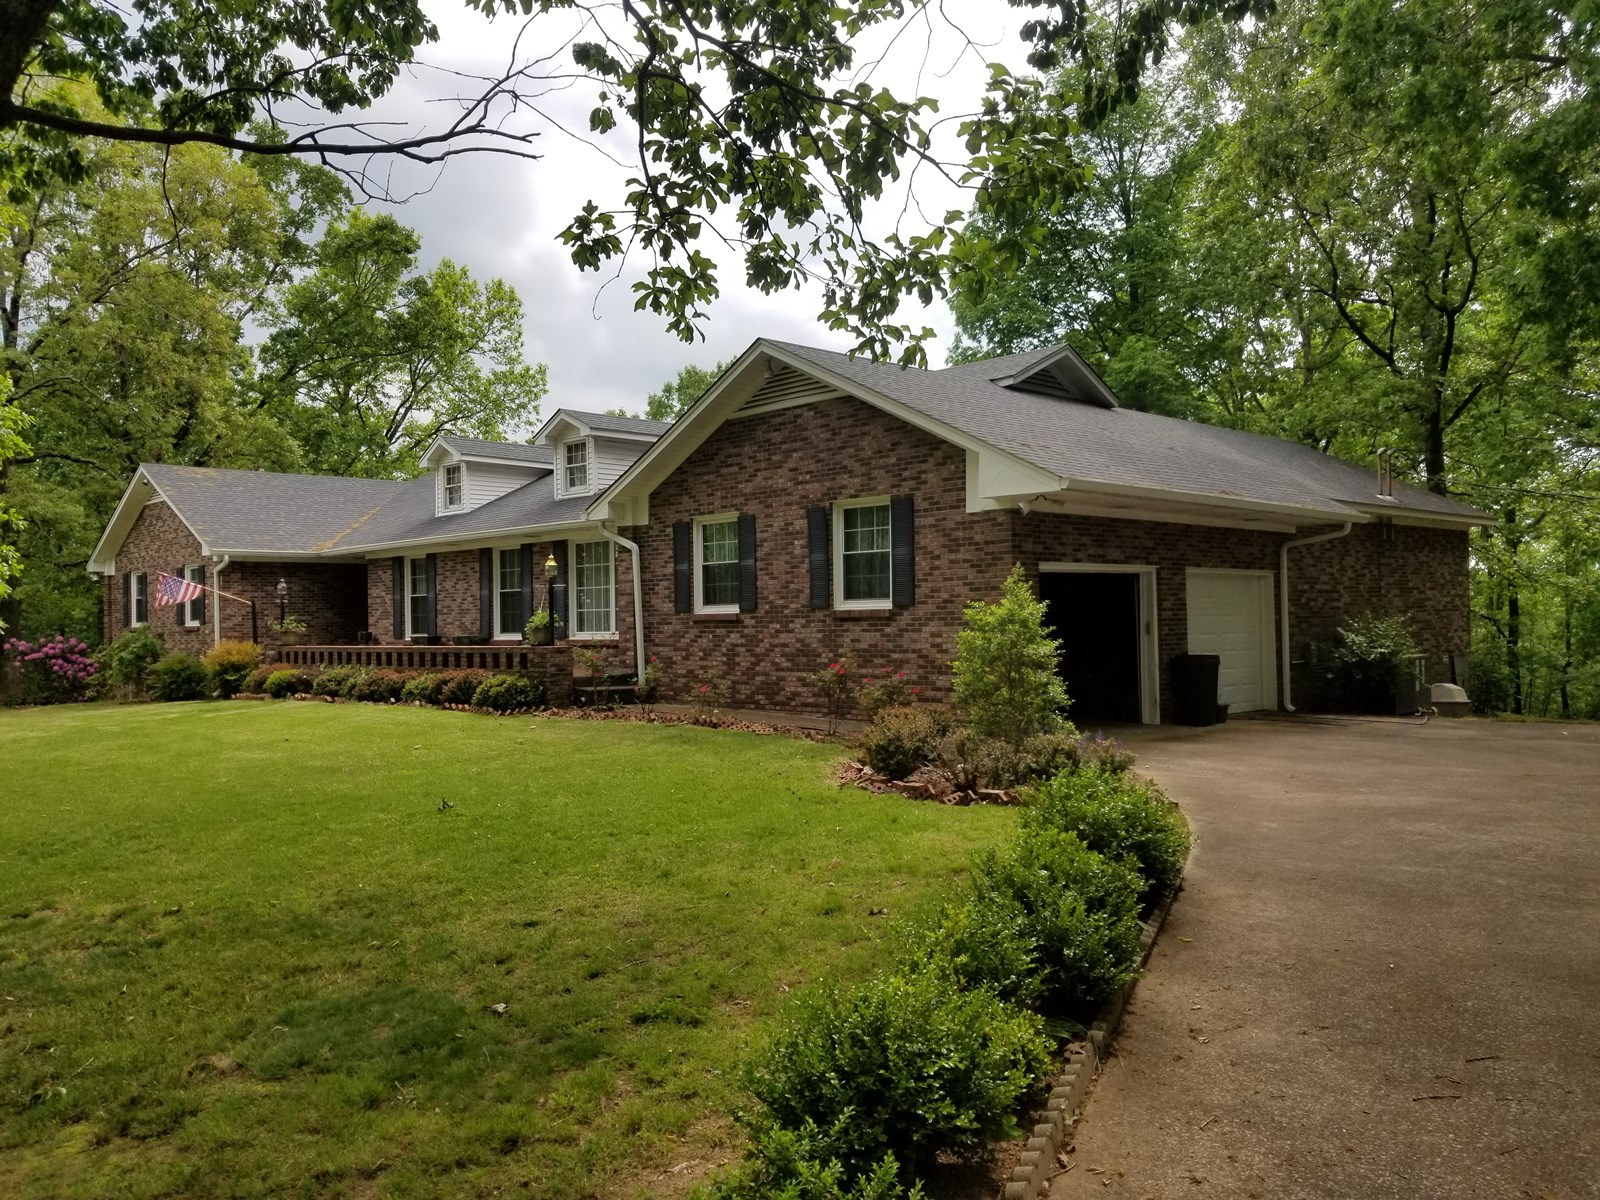 SOLD! WAYNESBORO TN 5 BED 2.5 BATH BRICK HOME 9 ACRE